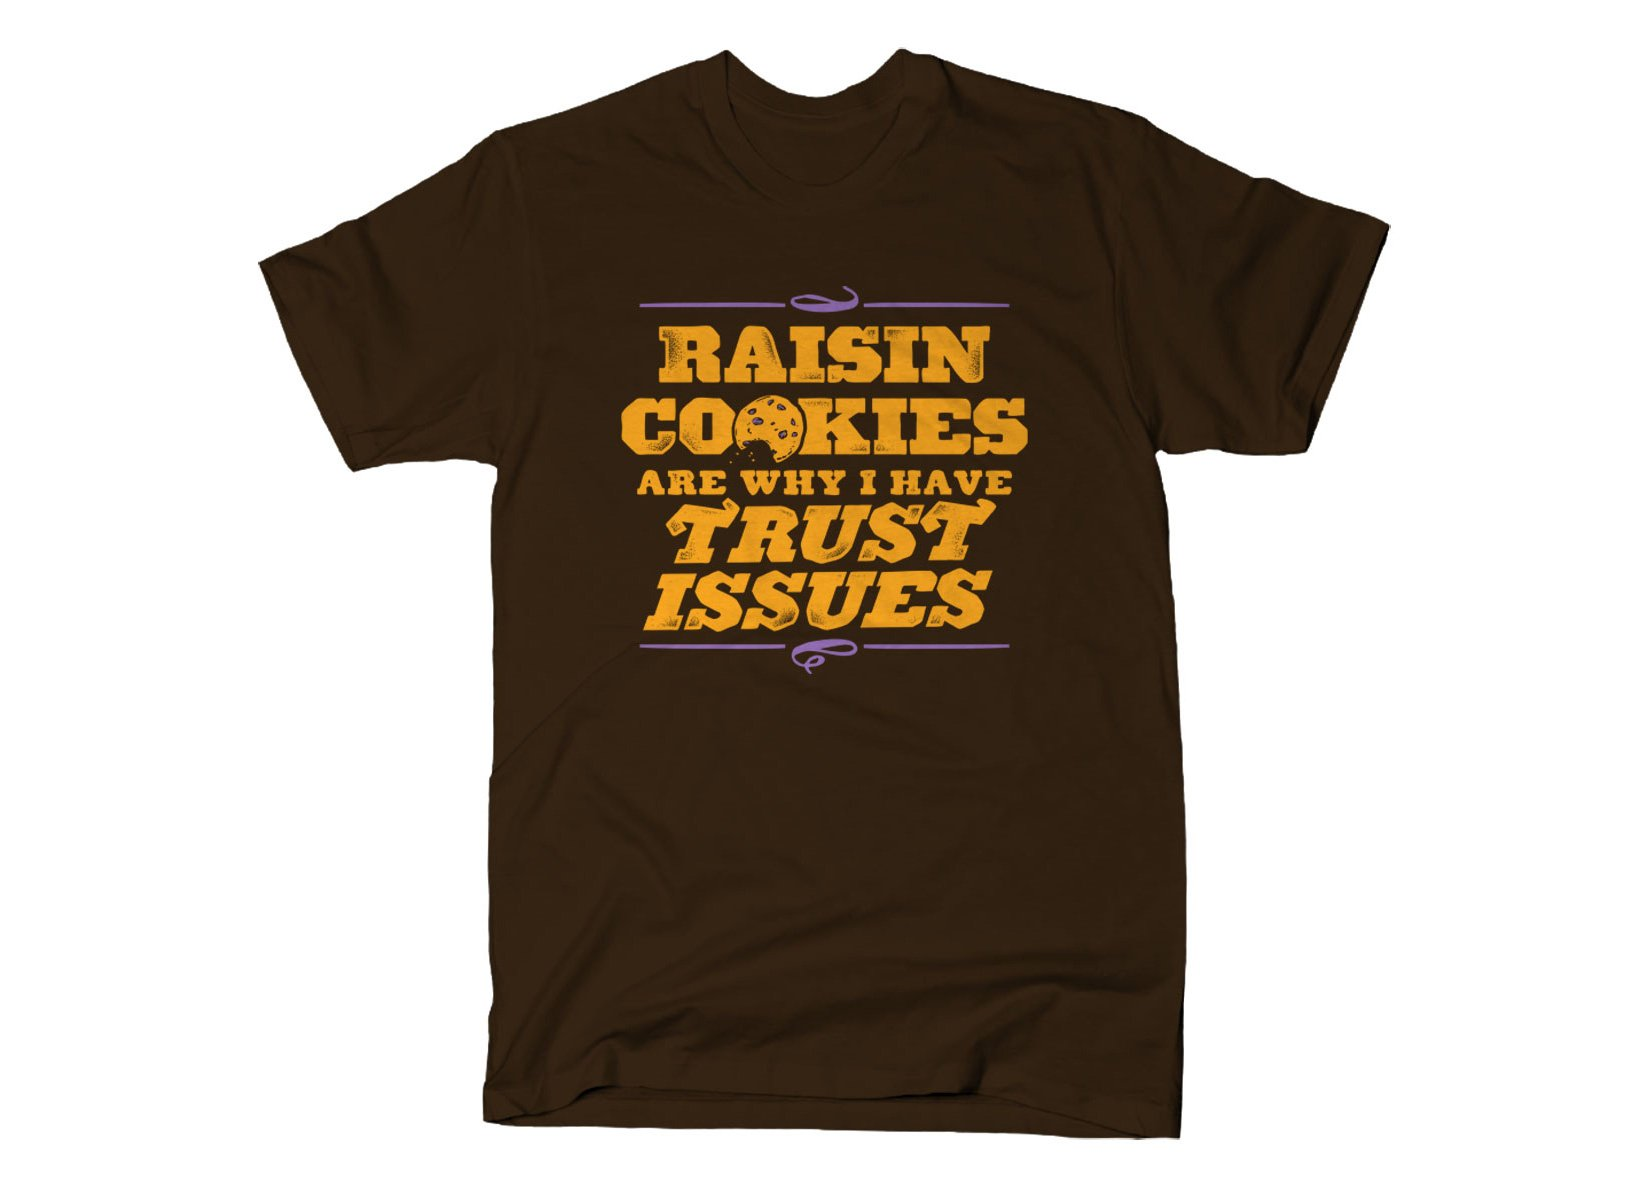 Raisin Cookies Are Why I Have Trust Issues on Mens T-Shirt